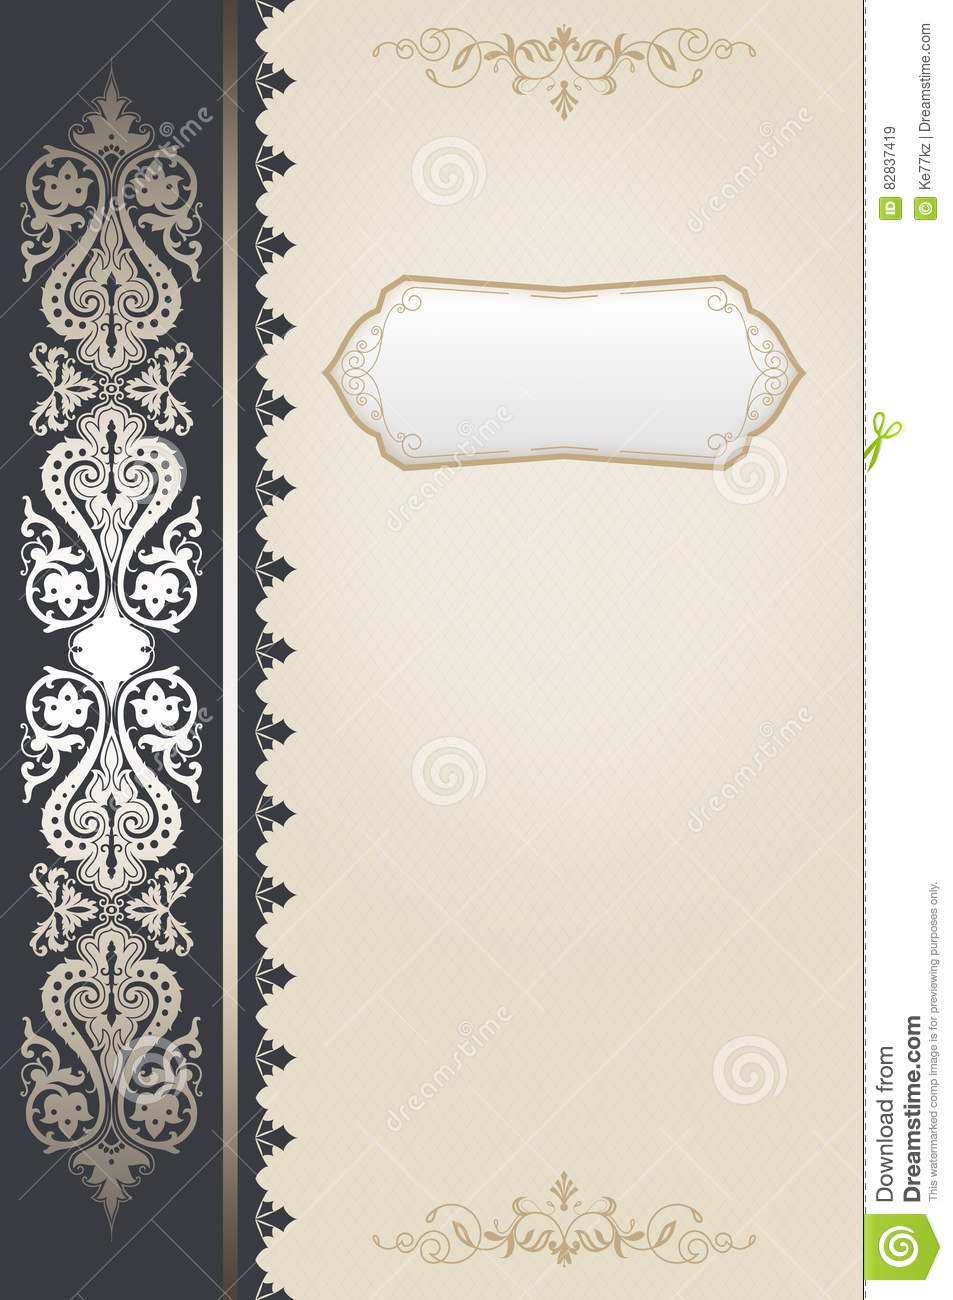 Background Design For Book Cover : Decorative vintage background book cover design stock